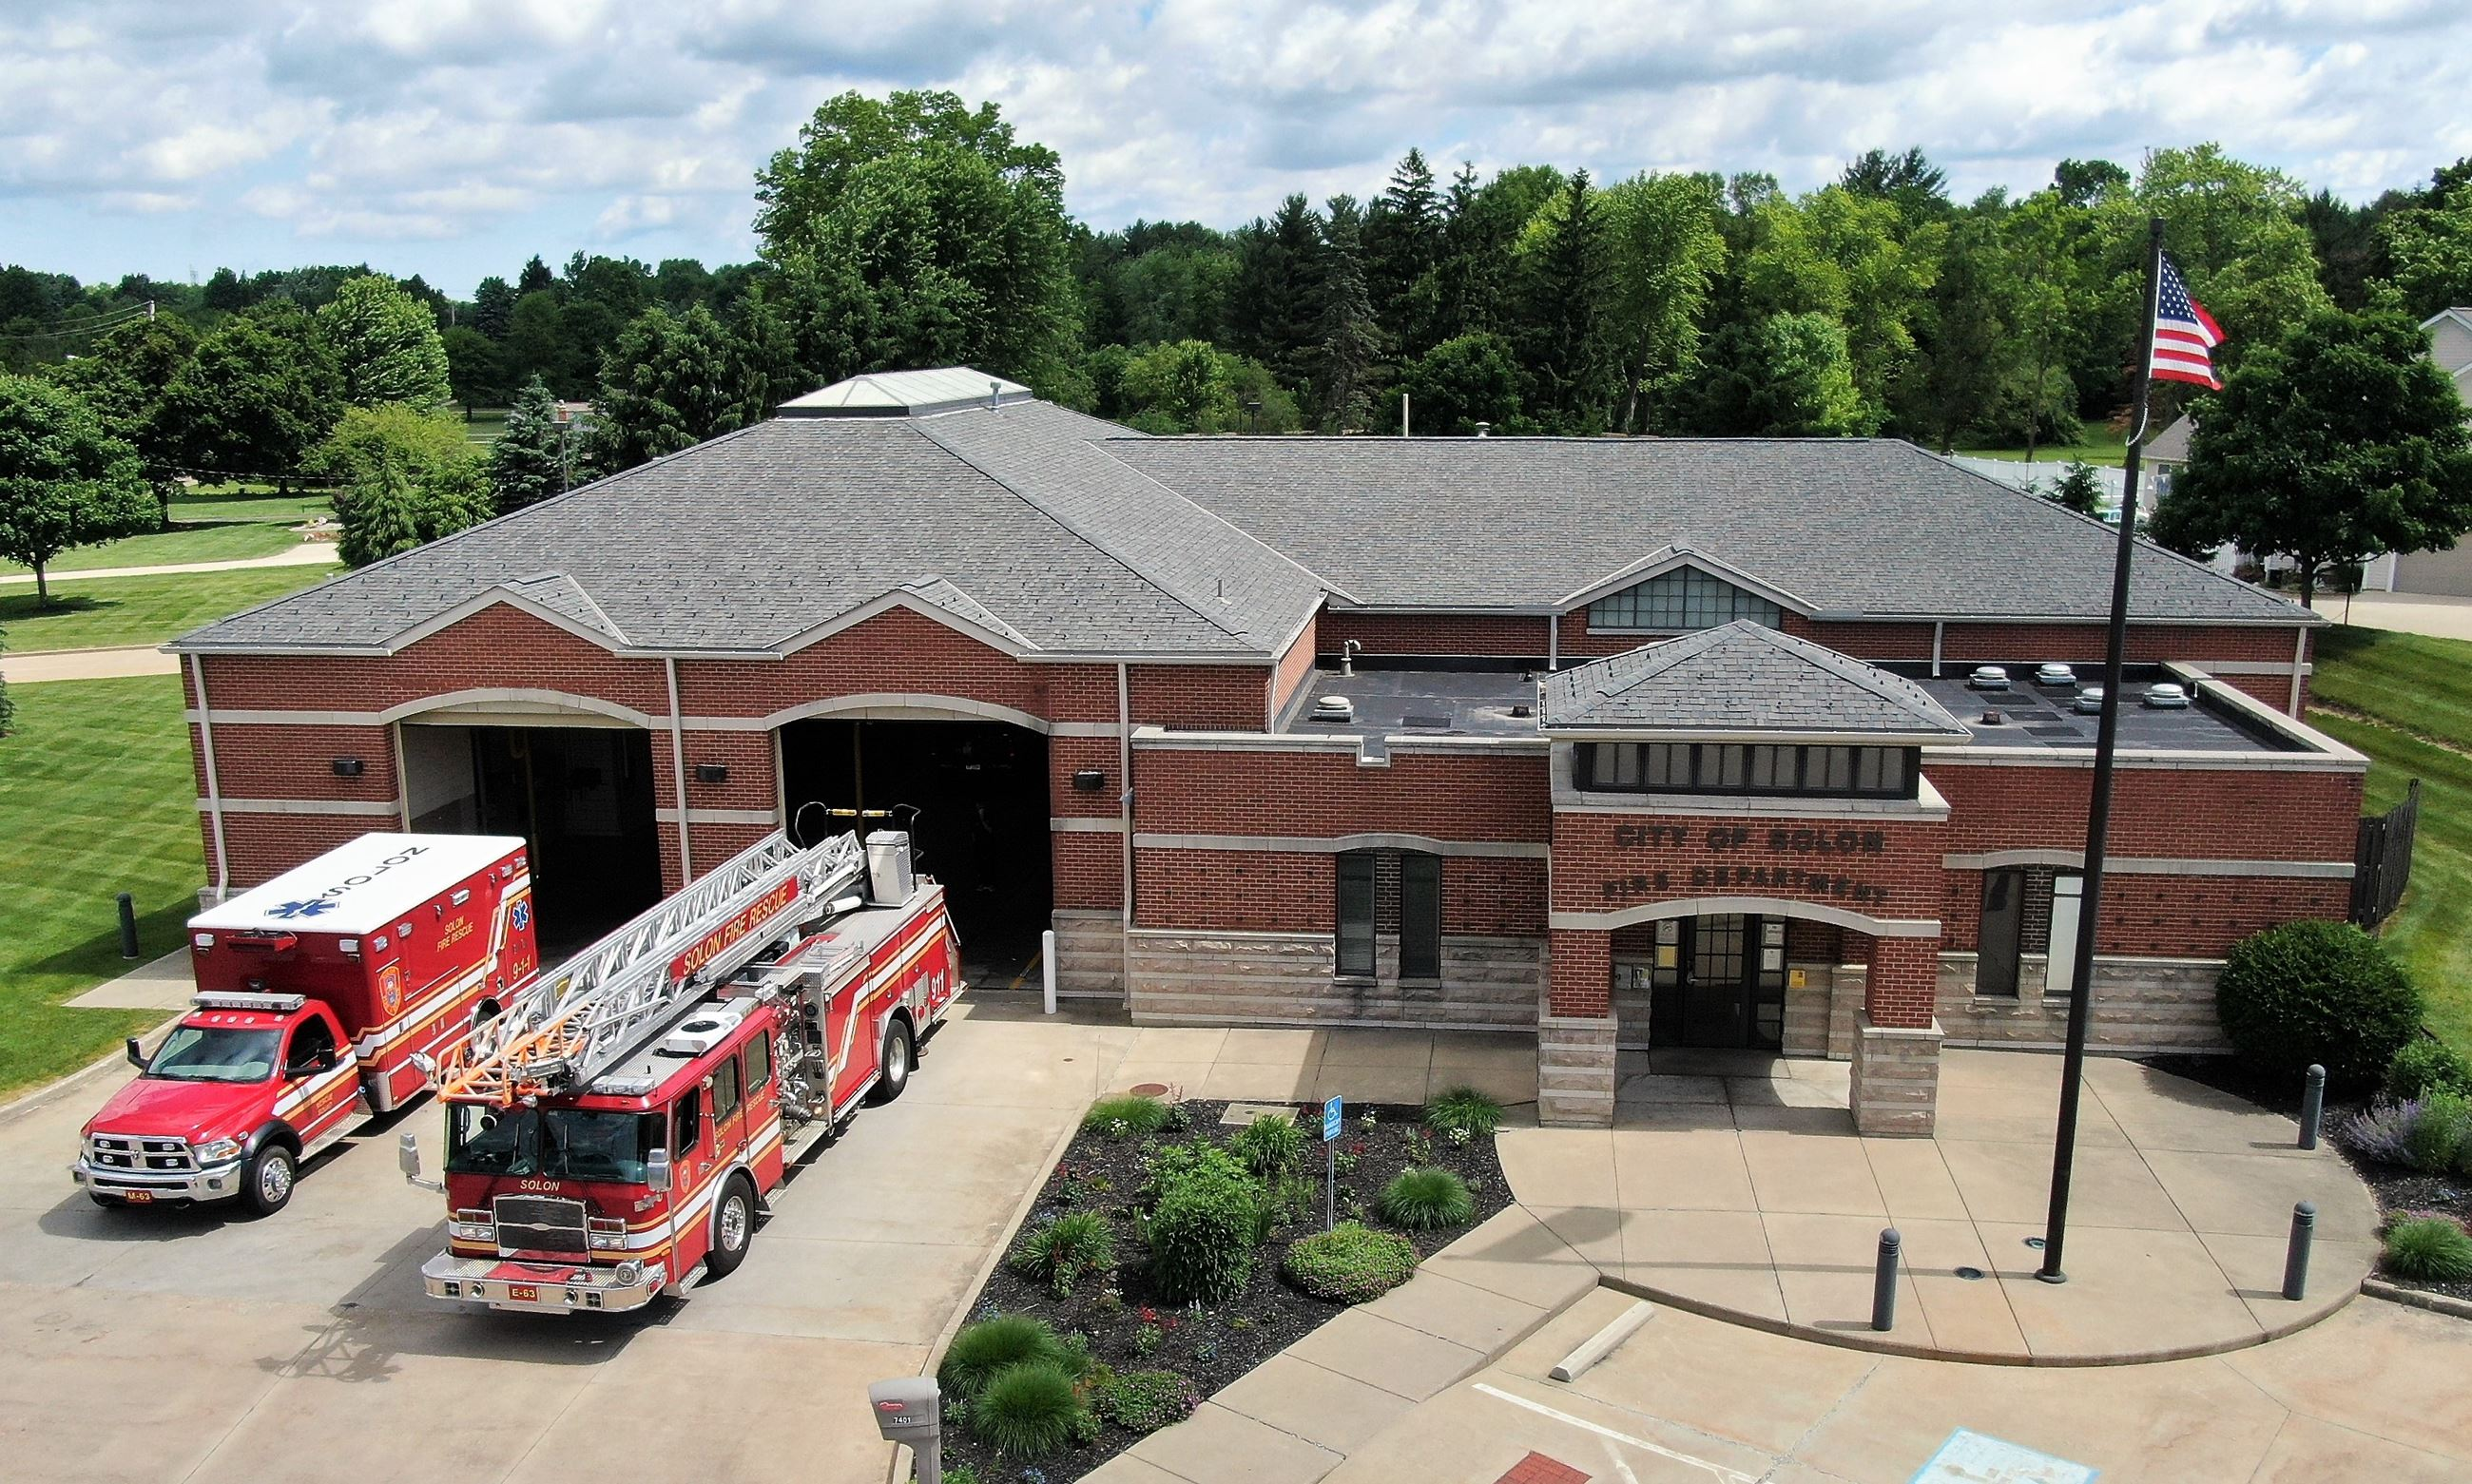 Station 3 with Trucks